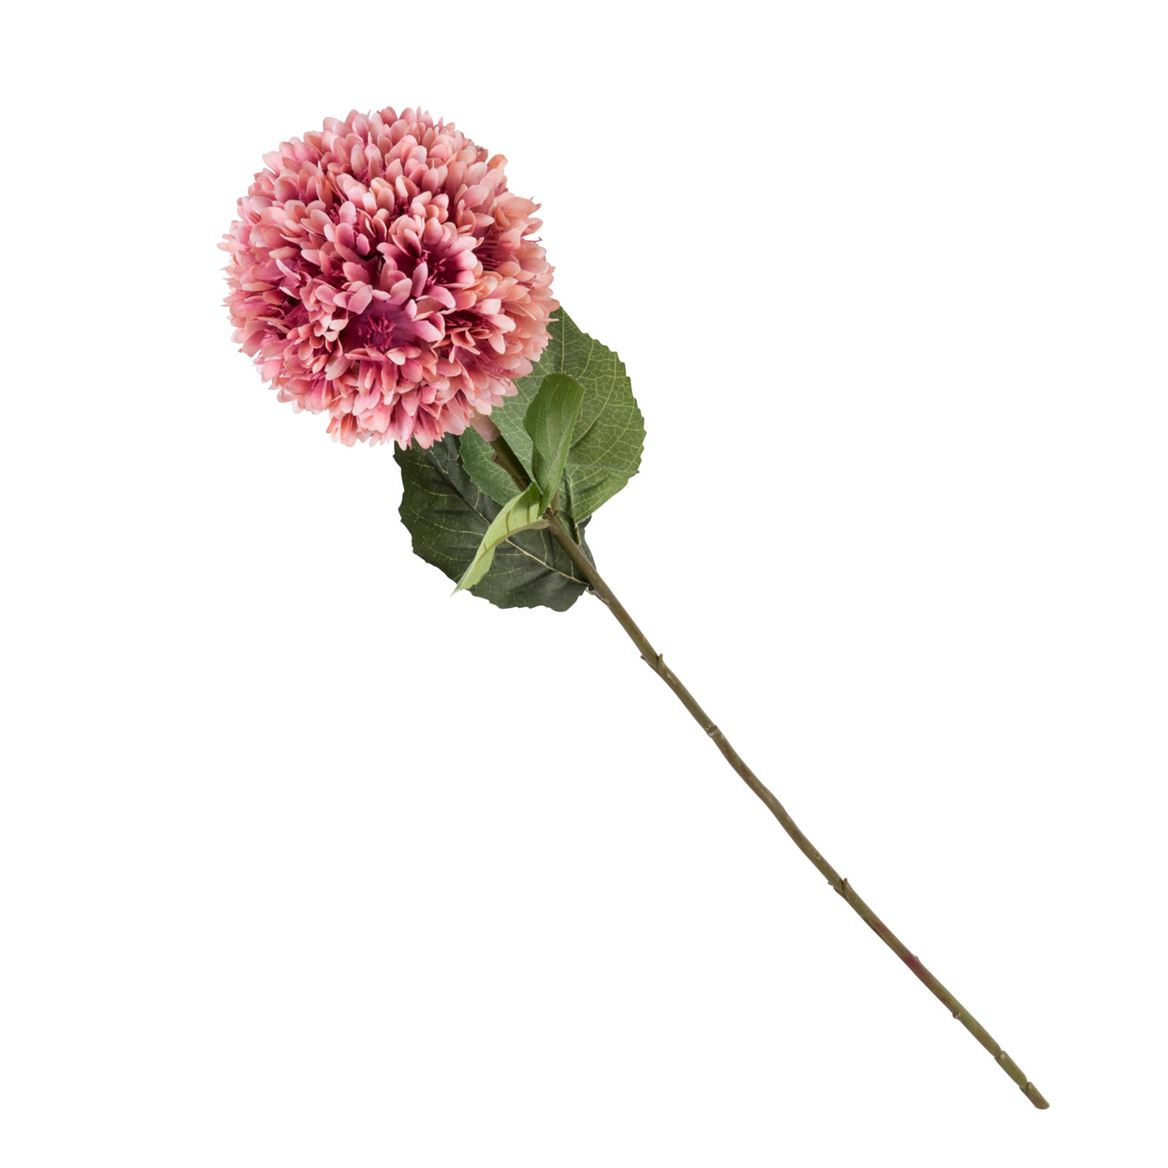 RUBY Flor artificial rosa H 76 cm_ruby-flor-artificial-rosa-h-76-cm